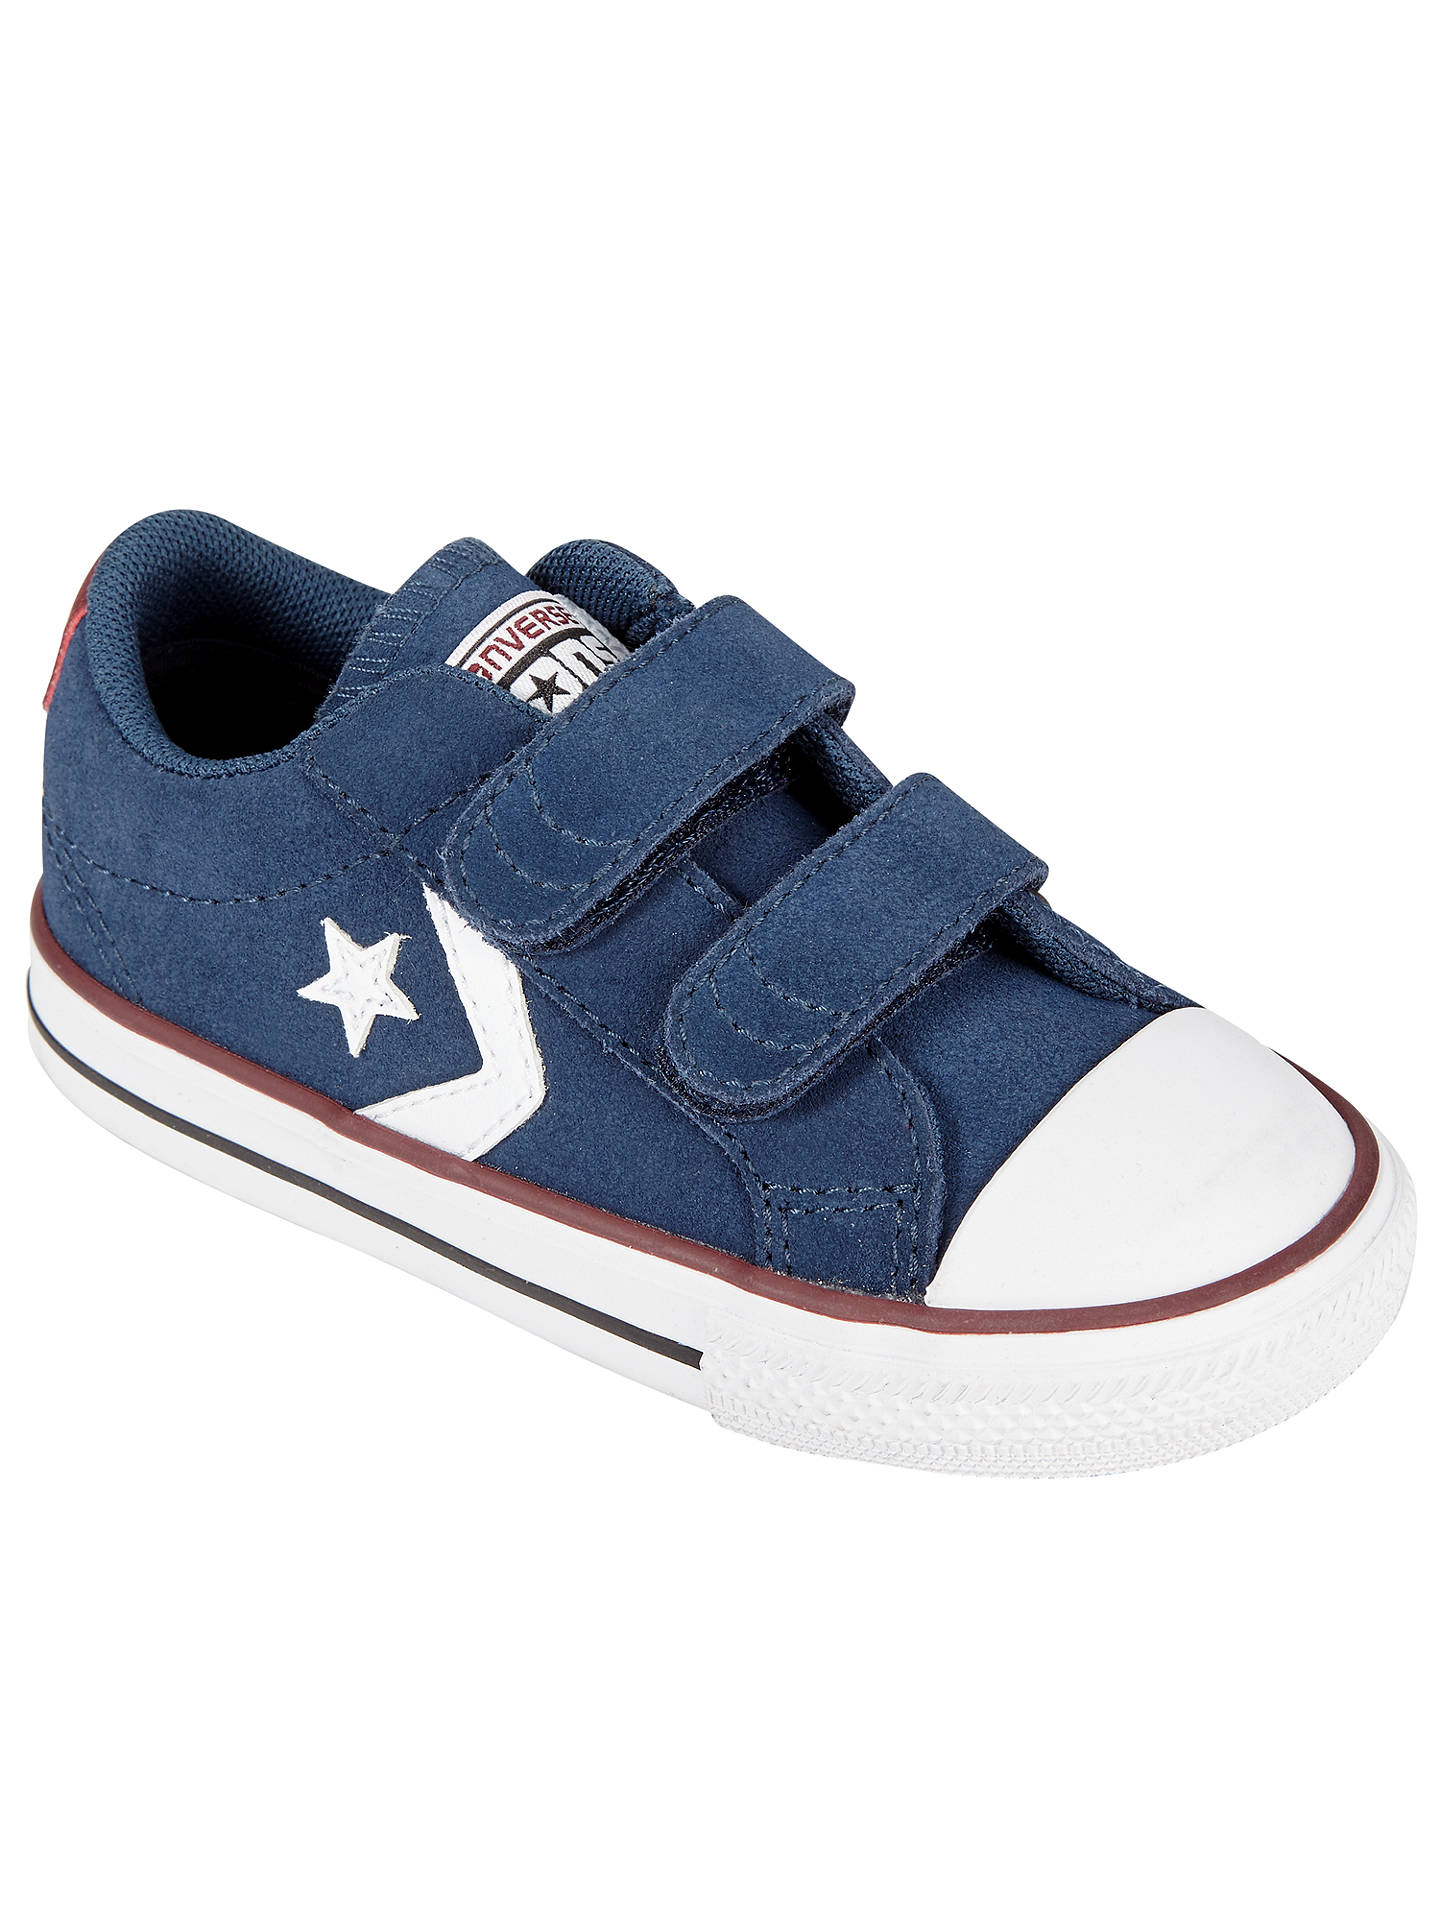 Converse Children's Star Player 2V Shoes, NavyWhite at John